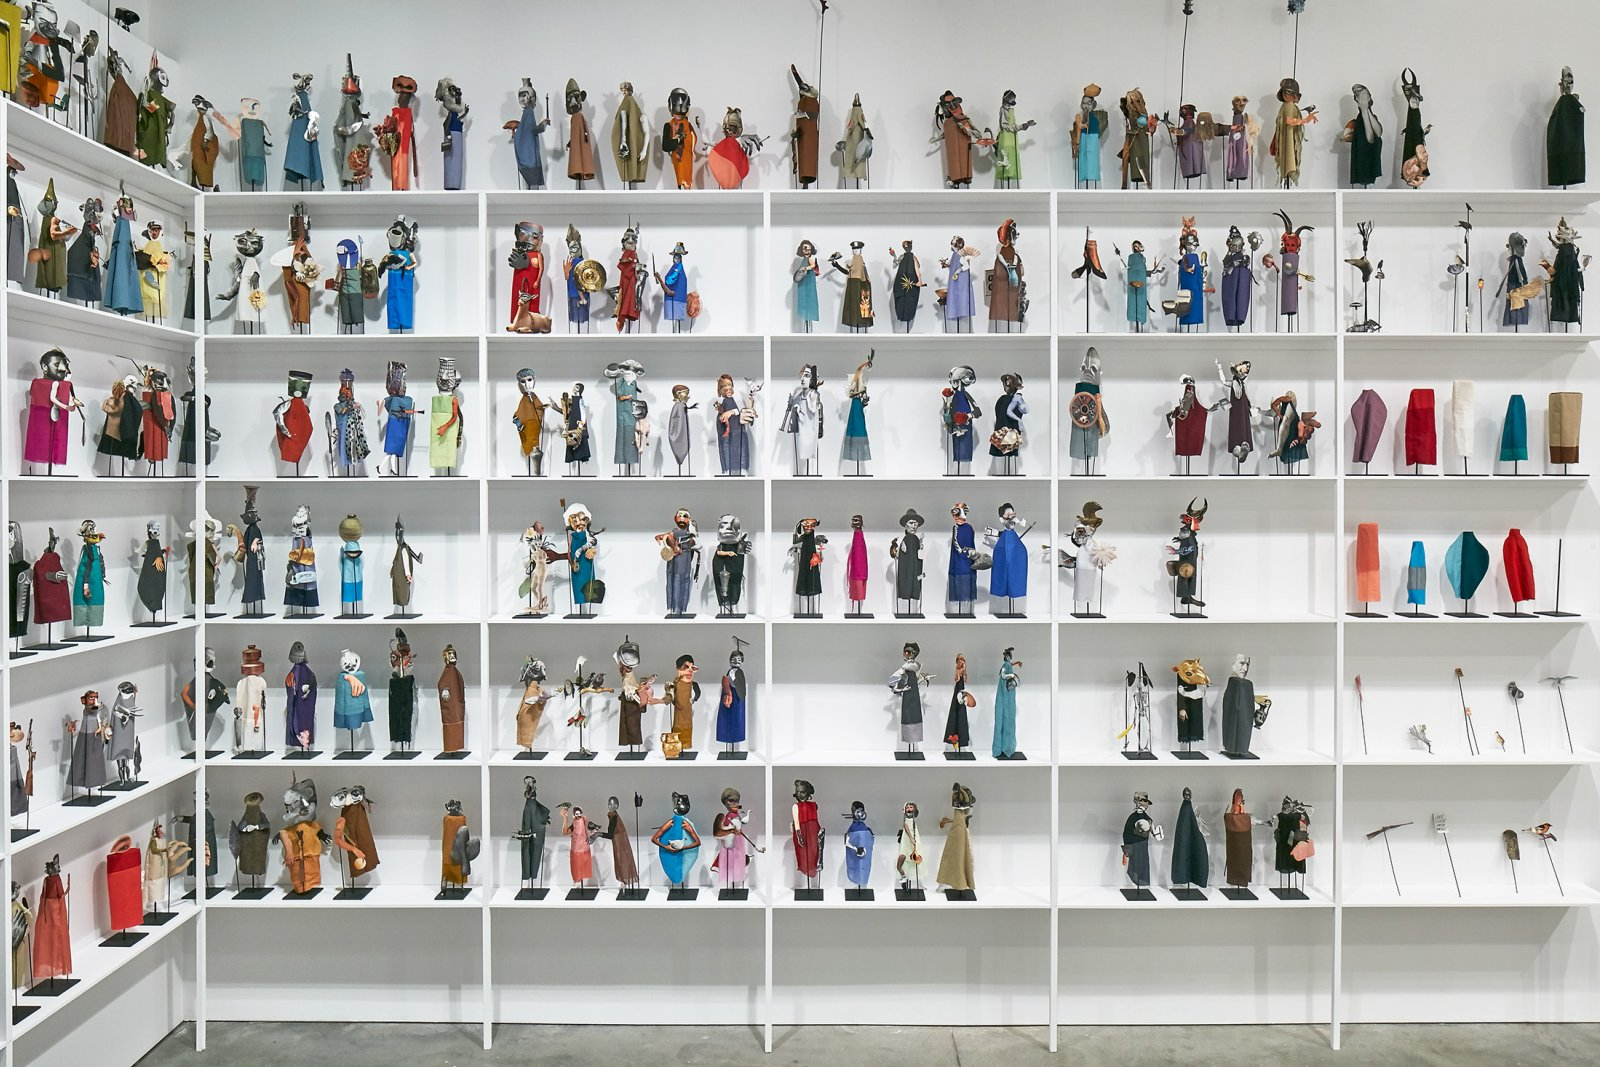 Geoffrey Farmer, The Surgeon and the Photographer, 2009, paper, textile, wood, metal, dimensions variable. Installation view, Institute of Contemporary Art, Boston, 2016 by Geoffrey Farmer